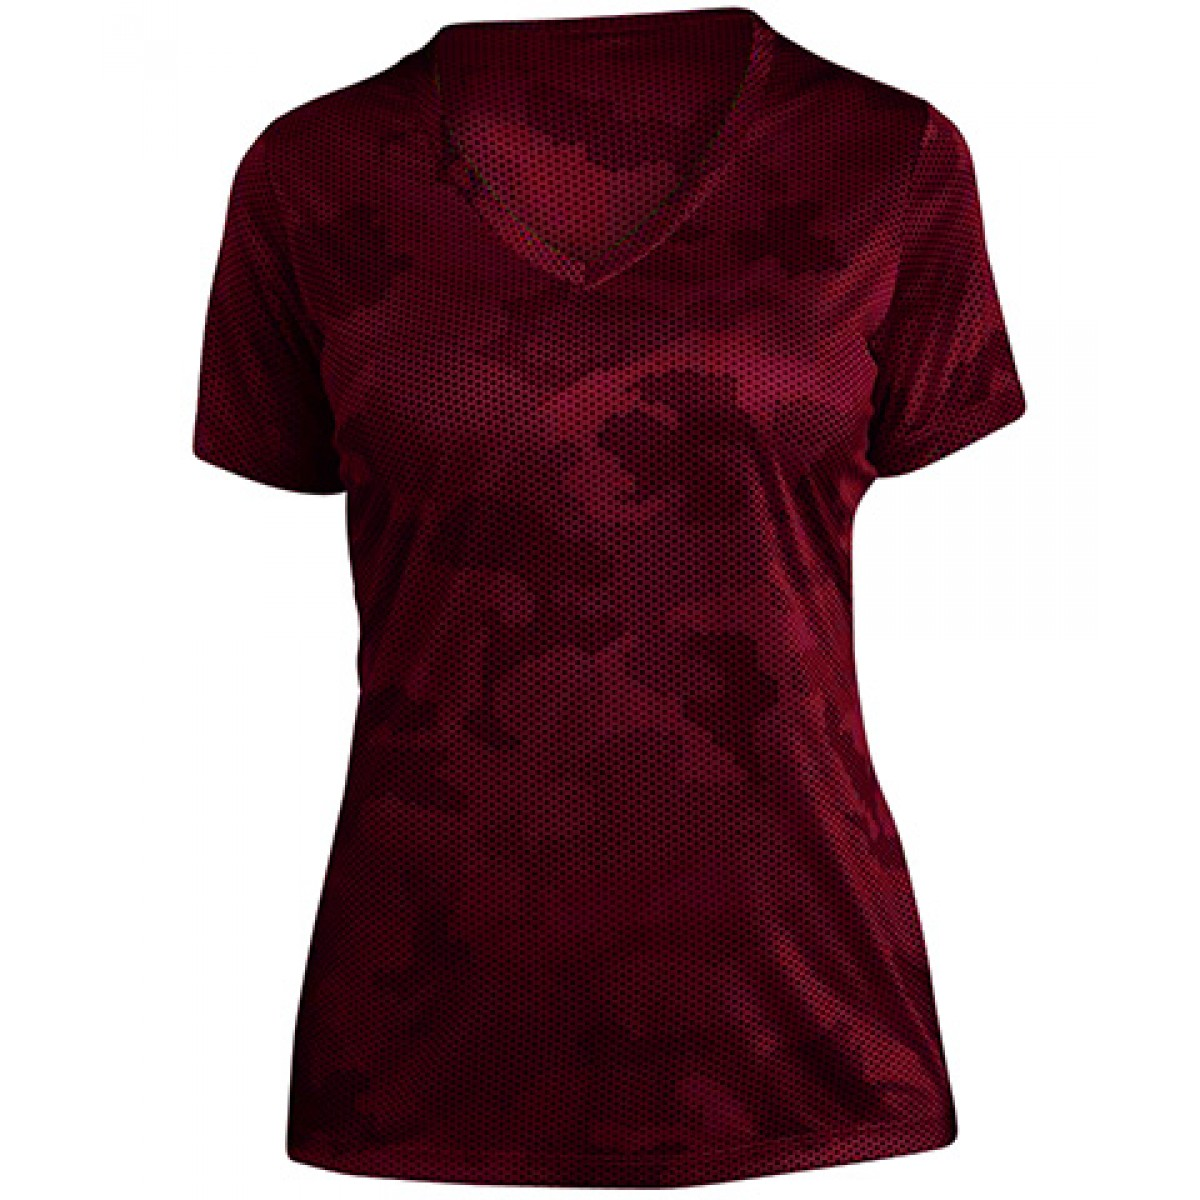 Ladies CamoHex V-Neck Tee (Colors: Red, Royal Blue)